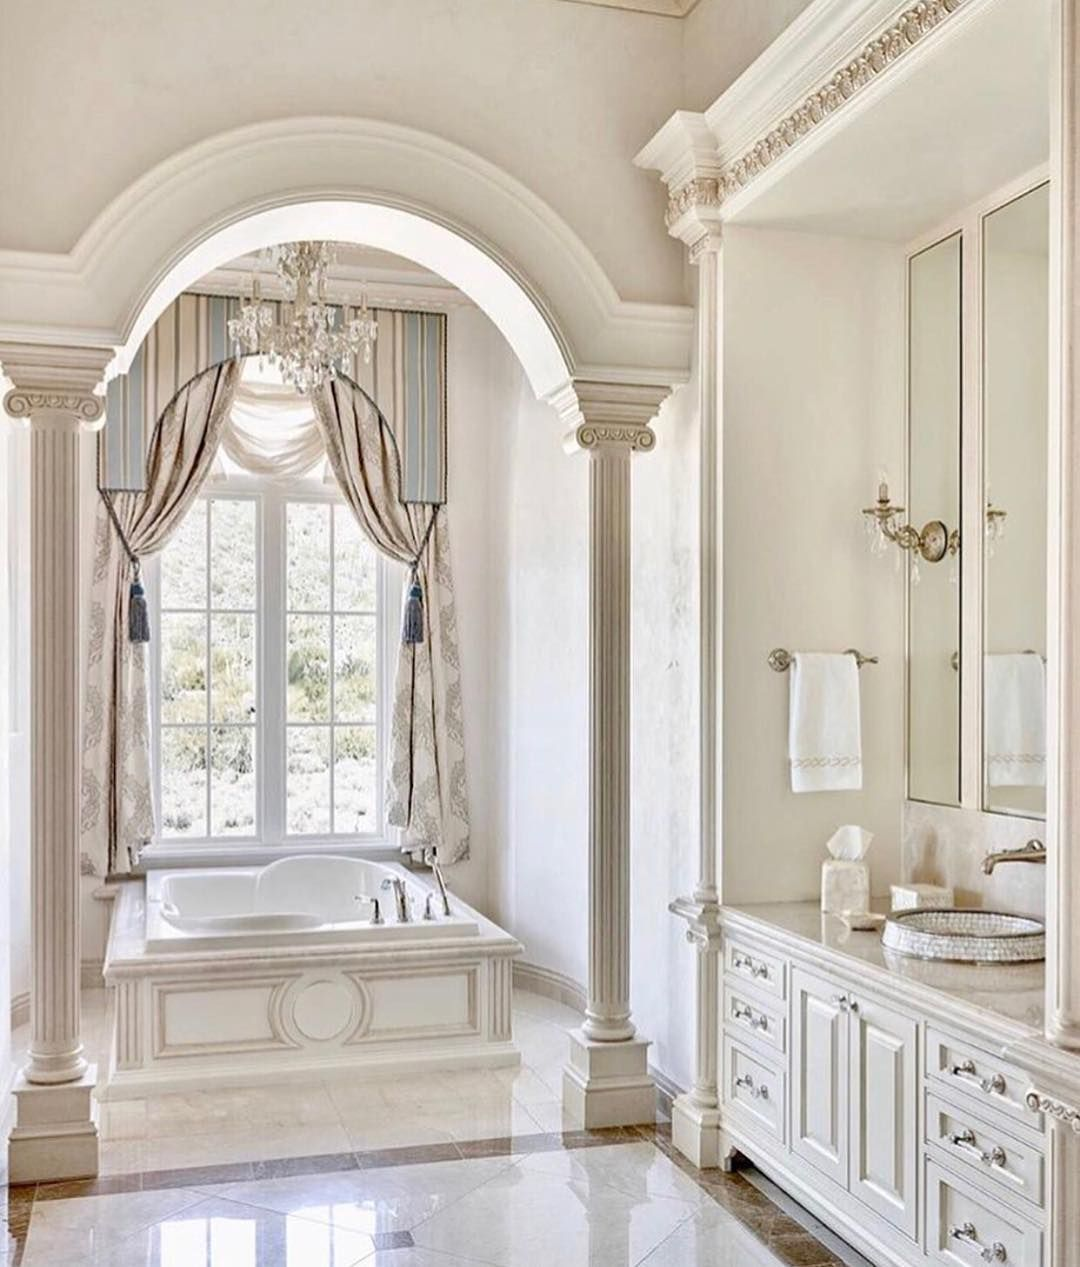 872 Likes, 9 Comments - Vaughanview Custom Homes Inc ...